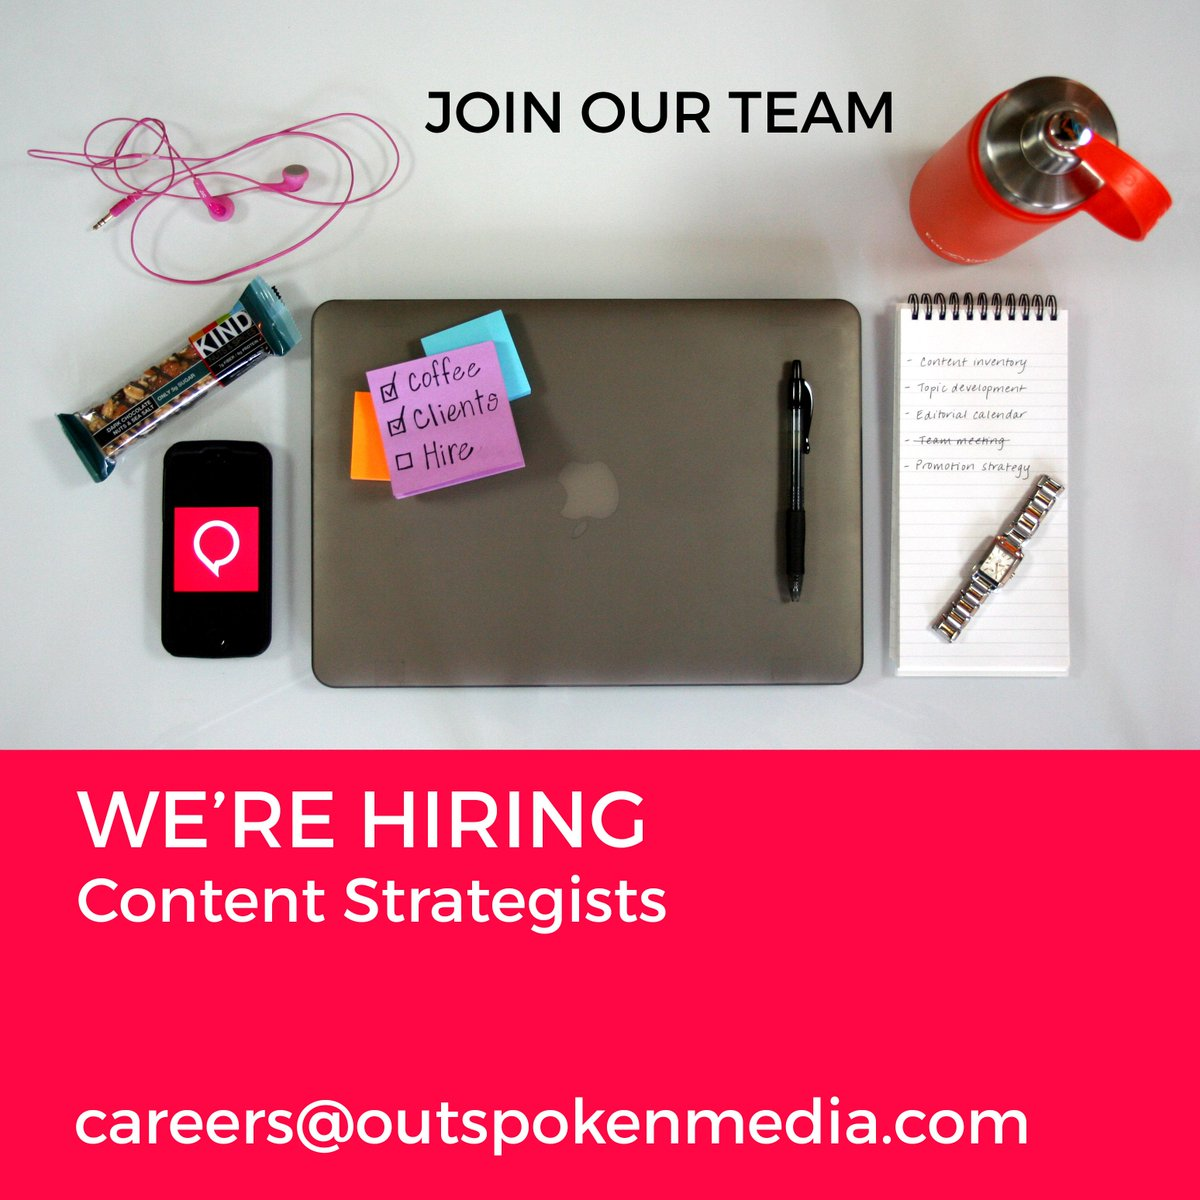 Join the @OutspokenMedia content strategy team! Not pictured--chocolate. Lots of it. Email careers@outspokenmedia.com http://t.co/HadYyzALuo